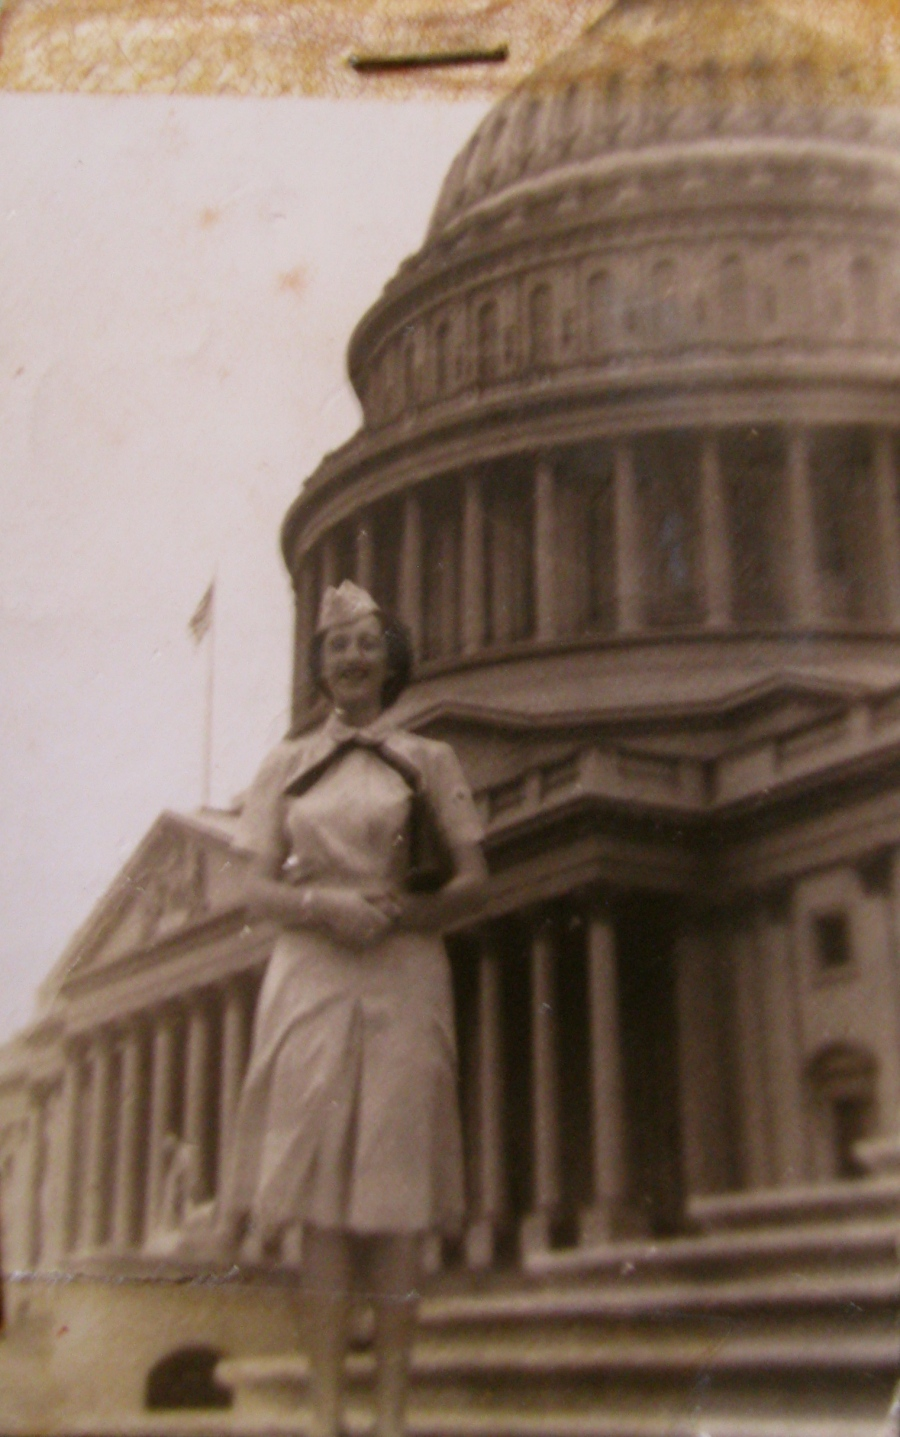 When this picture of Margaret on the steps of the capitol in Washington, D.C. was taken she was serving as a nurse at St. Albans Naval Hospital in New York State. Photo provided